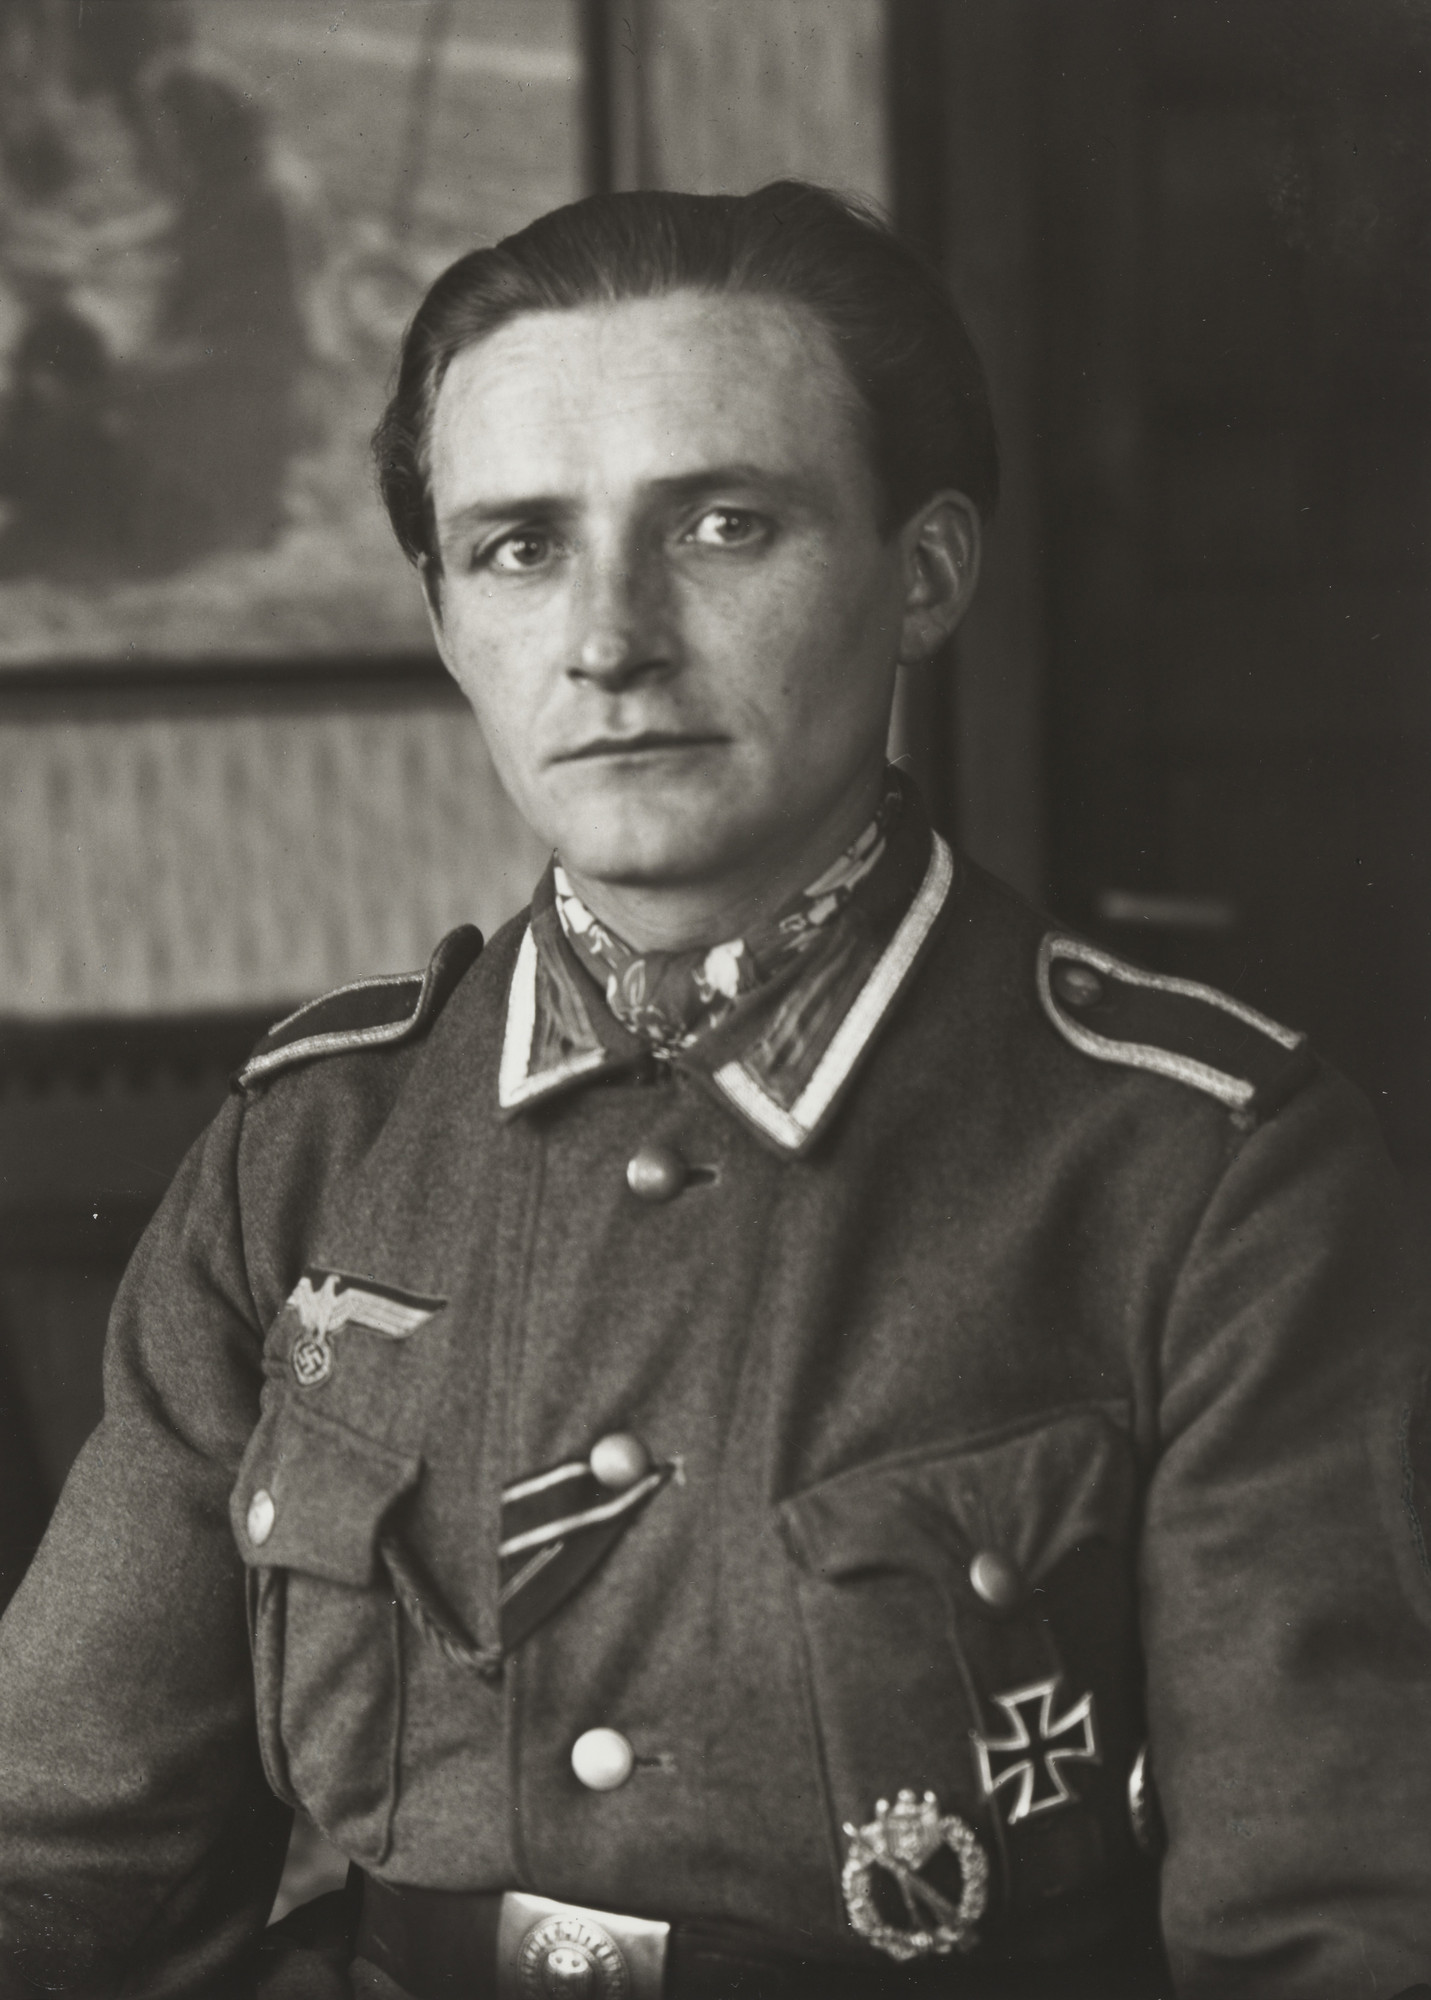 August Sander. Non-commissioned Officer. c. 1944